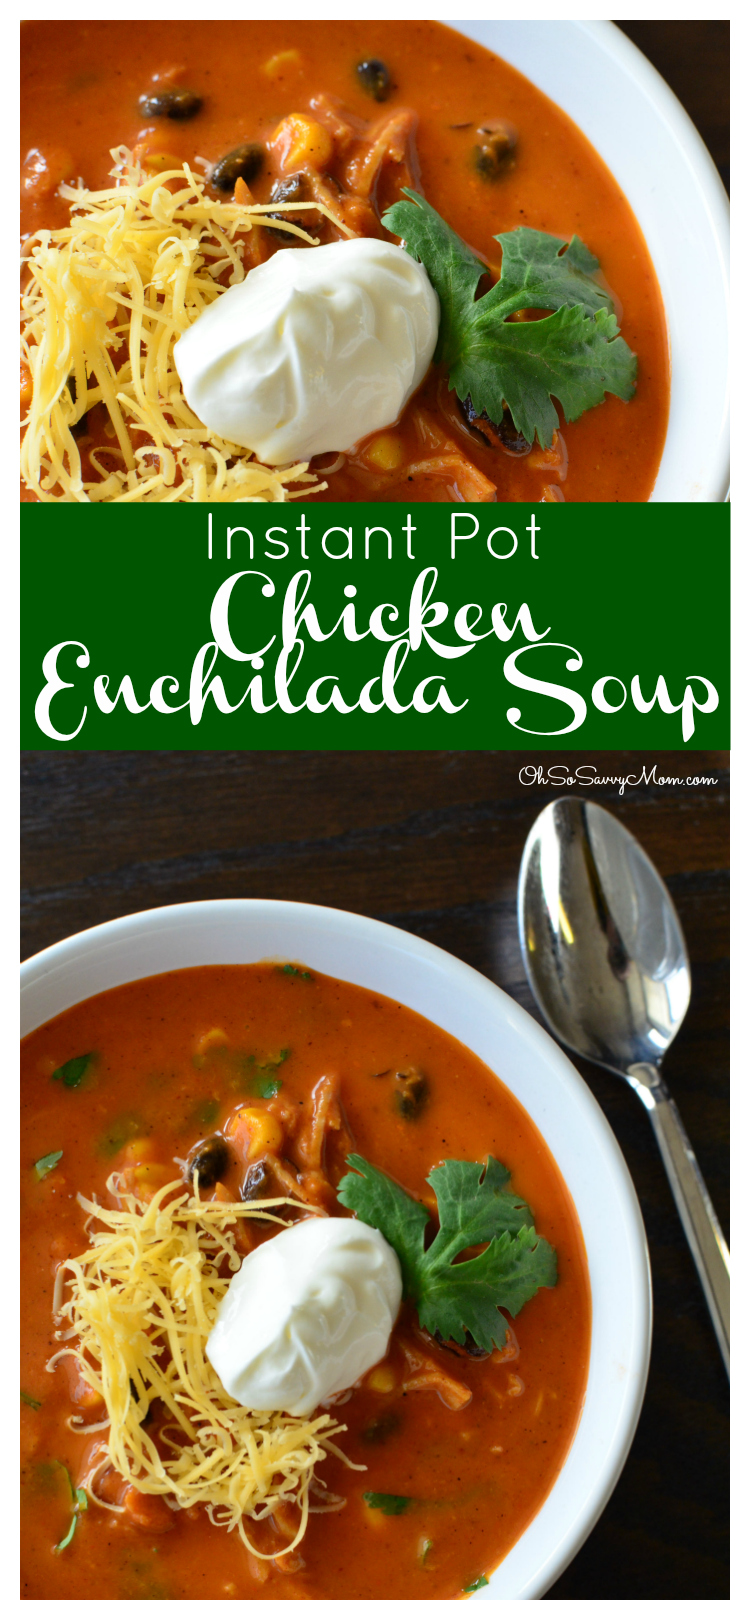 Instant Pot Chicken Enchilada Soup, Quick Easy Weeknight Dinner